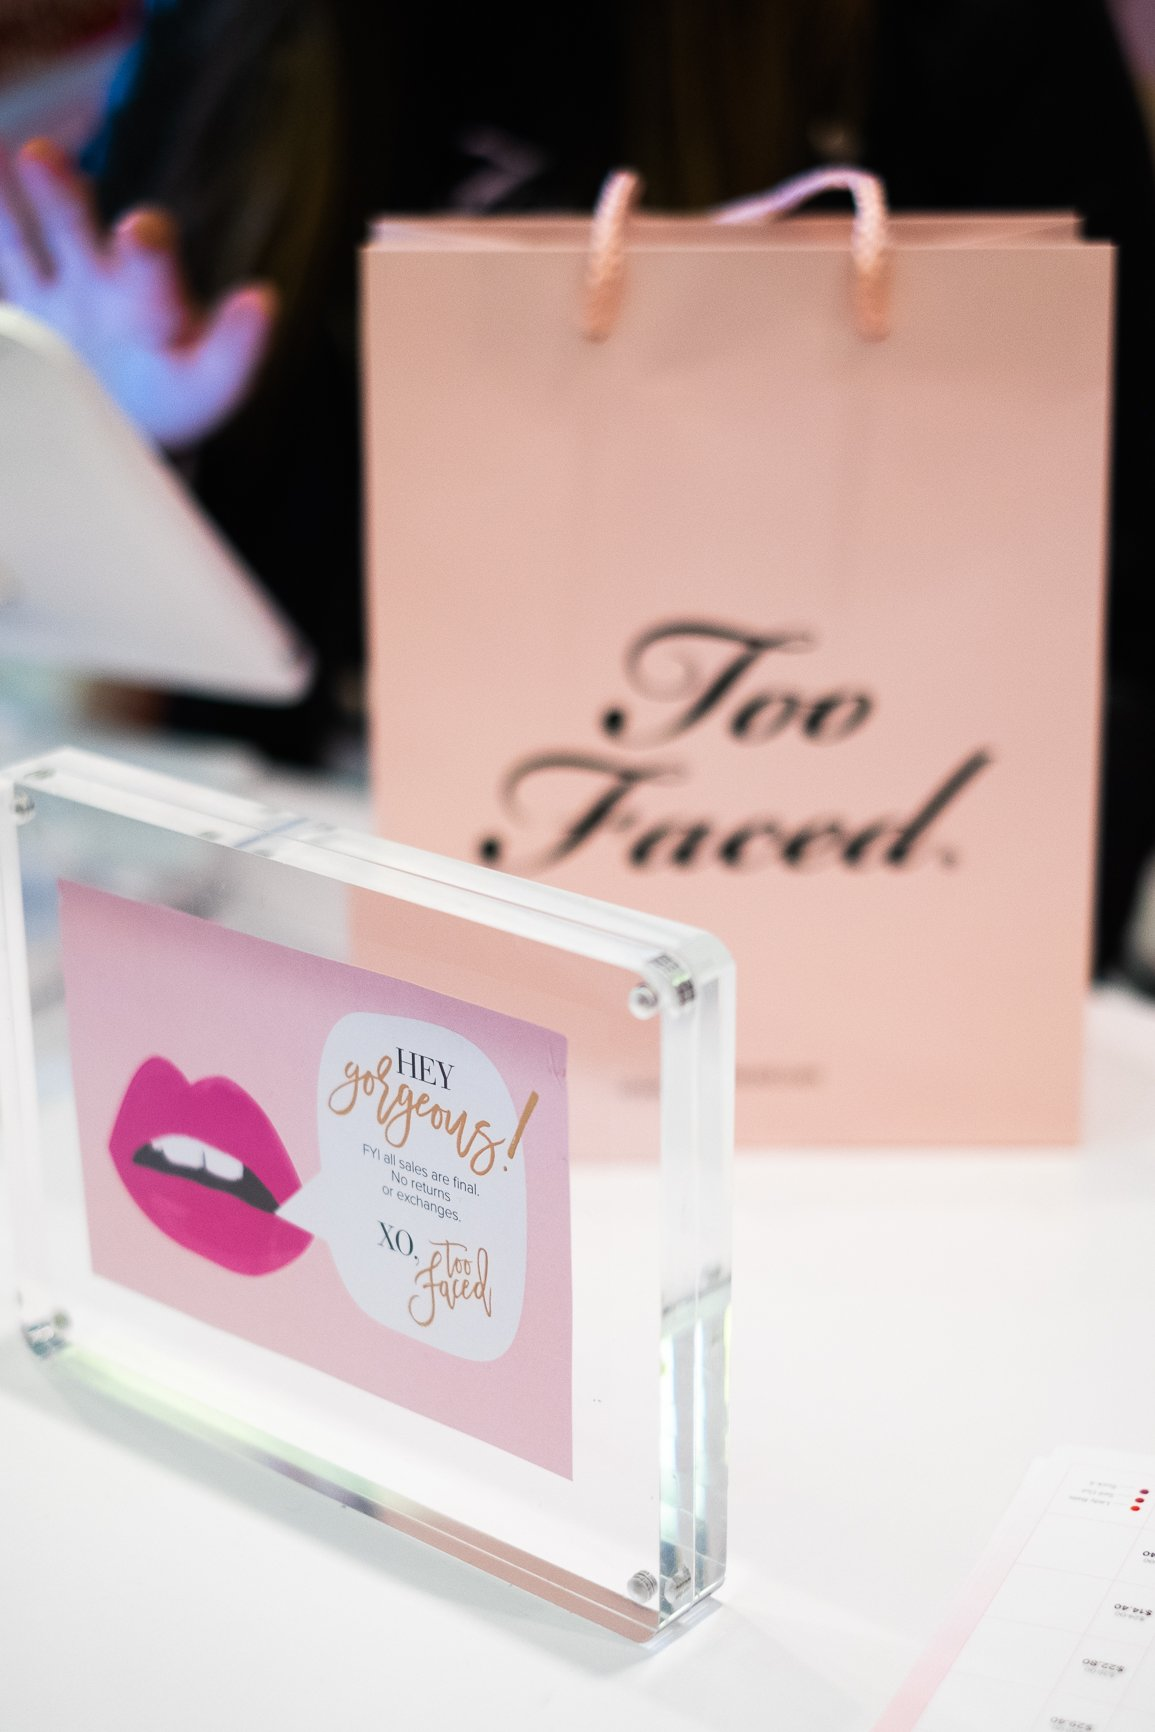 Too Faced stand